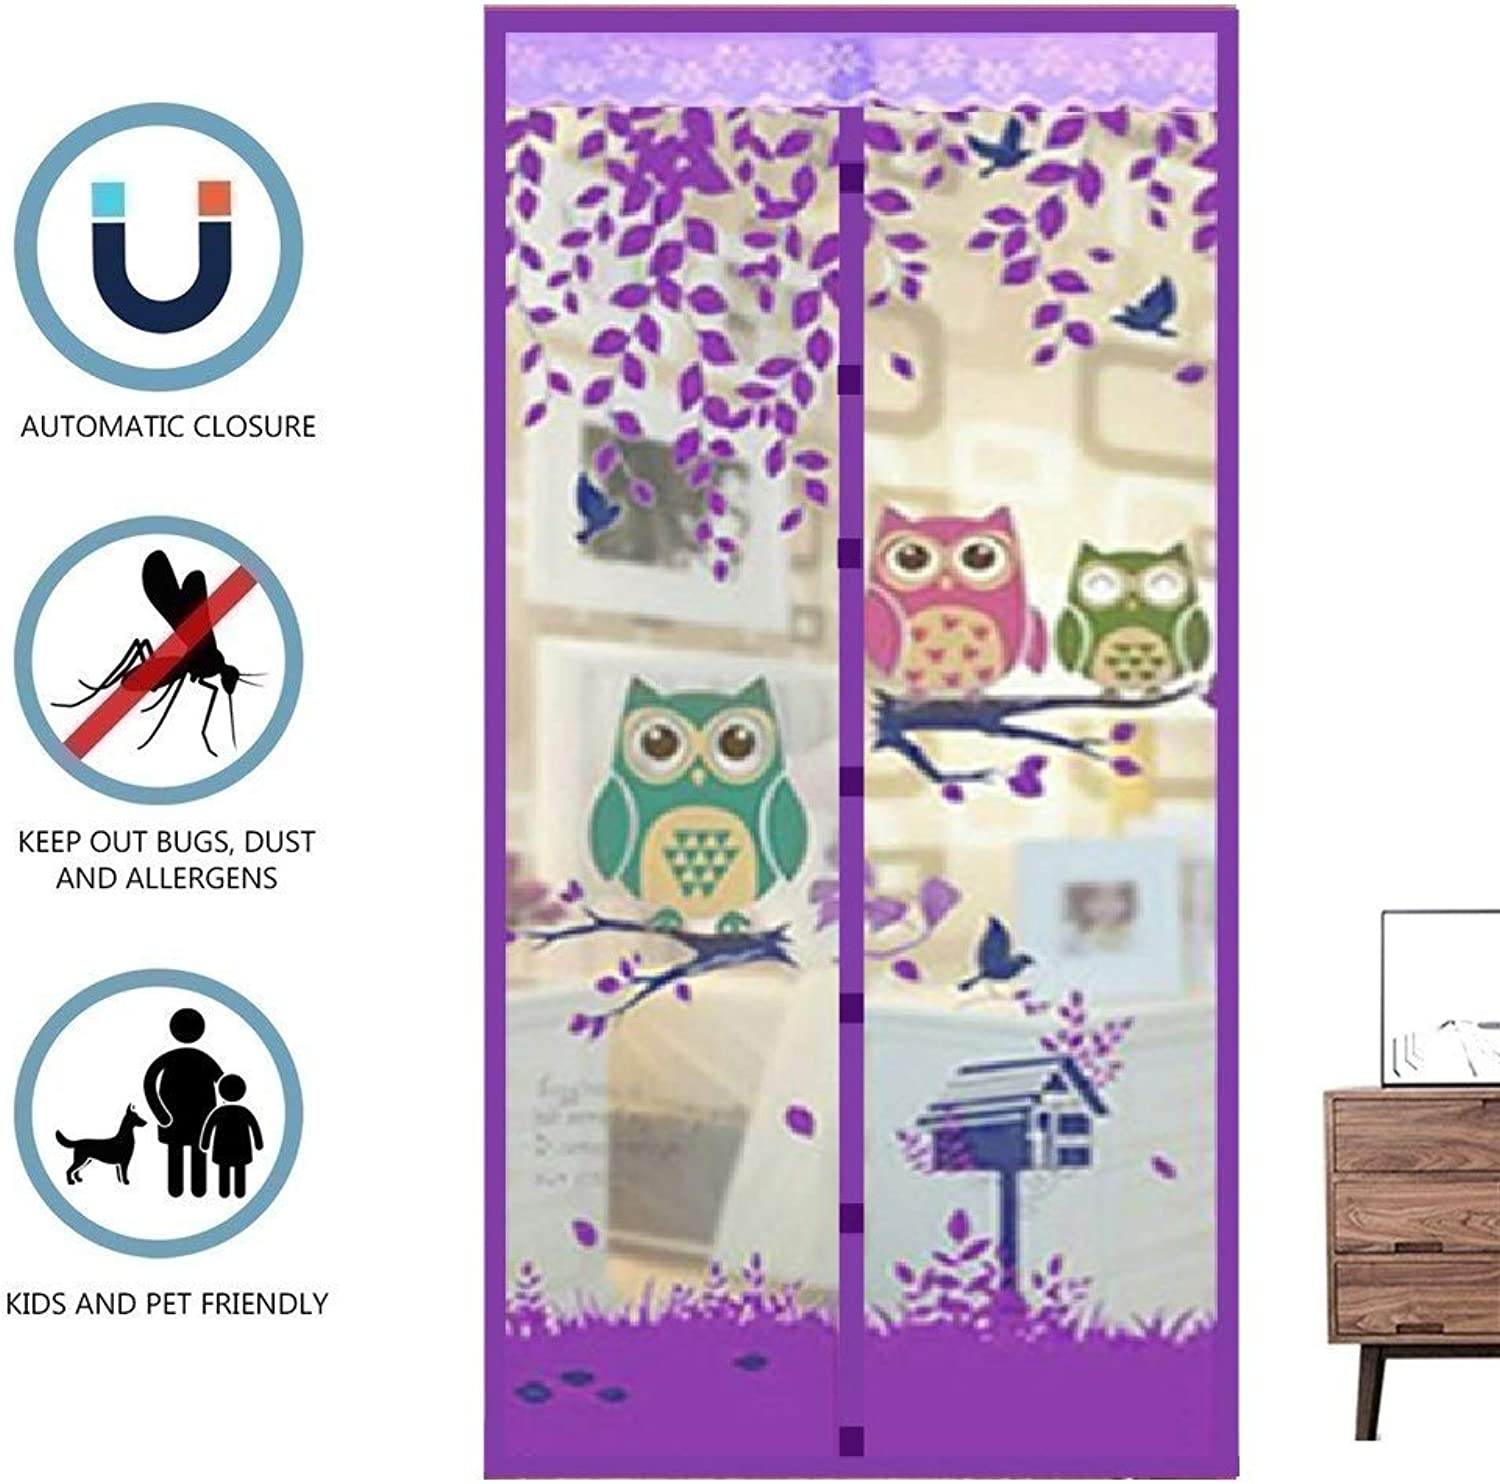 Fly Screen Door,Magnetic Fly Insect Screen Door Screen Mesh Curtain,Easy to Install Without Drilling,Purple,90  200cm